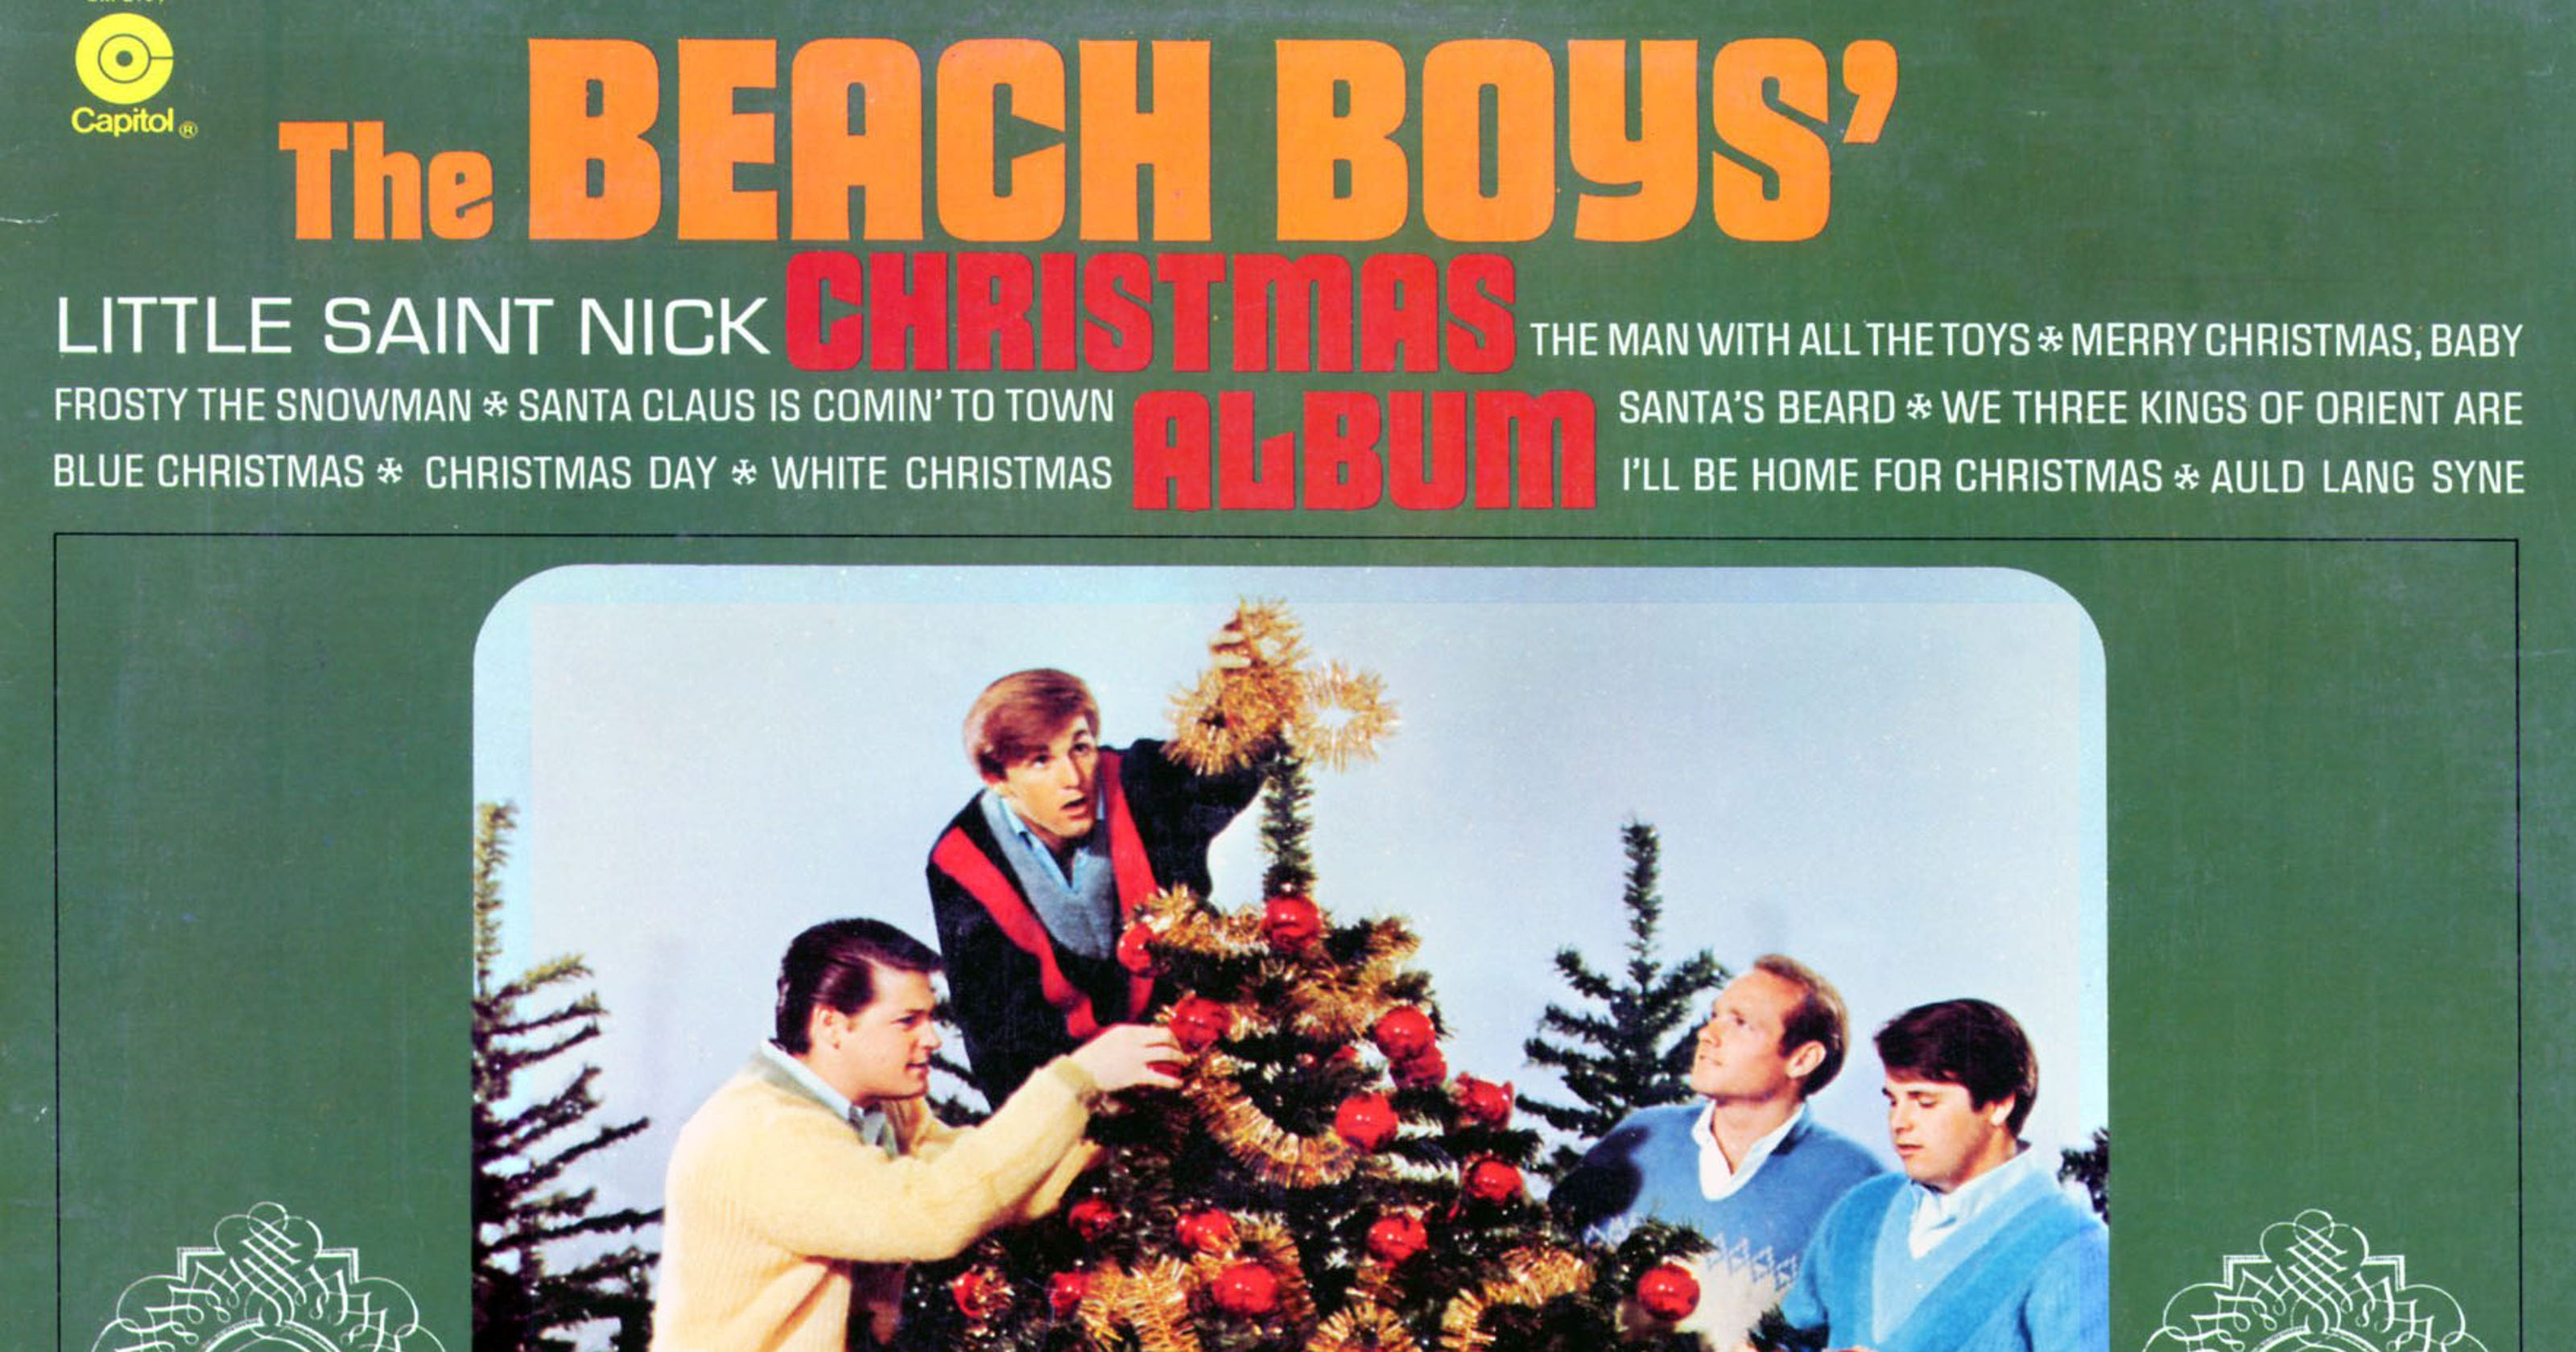 30 great songs for a rock and roll christmas - Beach Boys Christmas